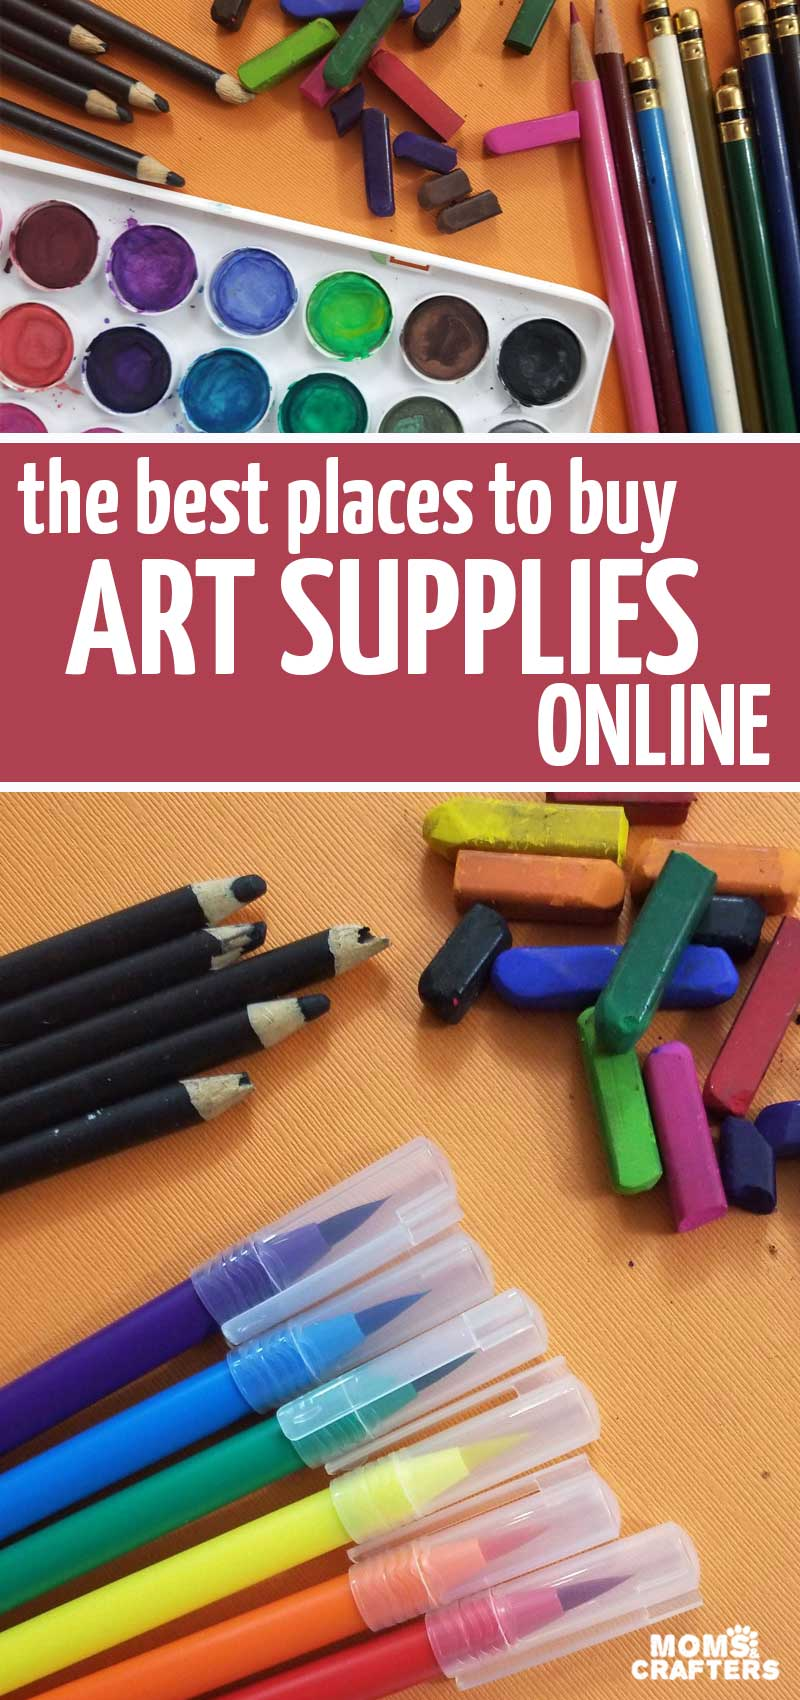 Click for a list of the best online art supply stores for kids, and adults! You'll find the best places to buy watercolor paints, brush markers, and more!